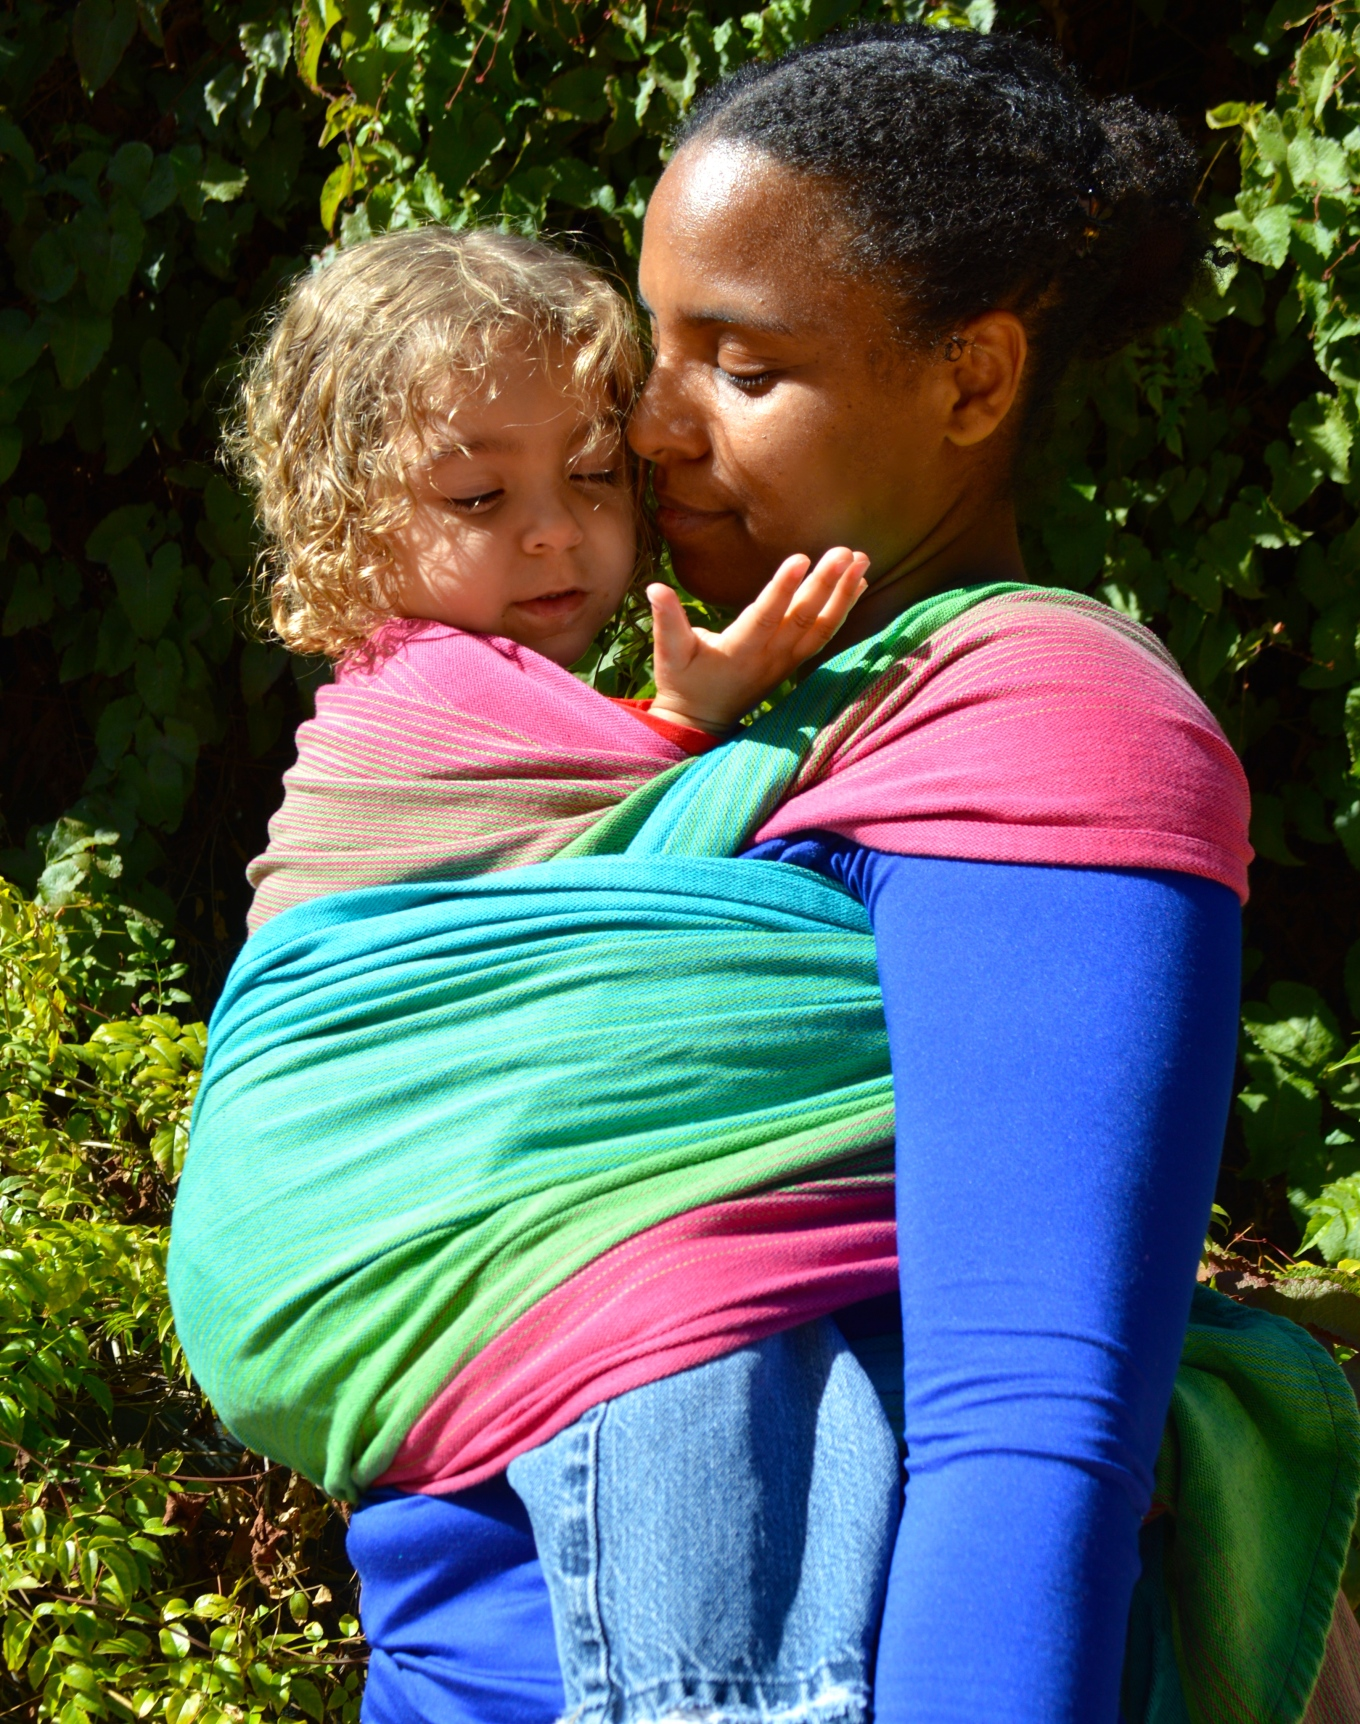 Momma gives kisses to toddler worn in a front carry in magenta, green, pink, and turquoise wrap.